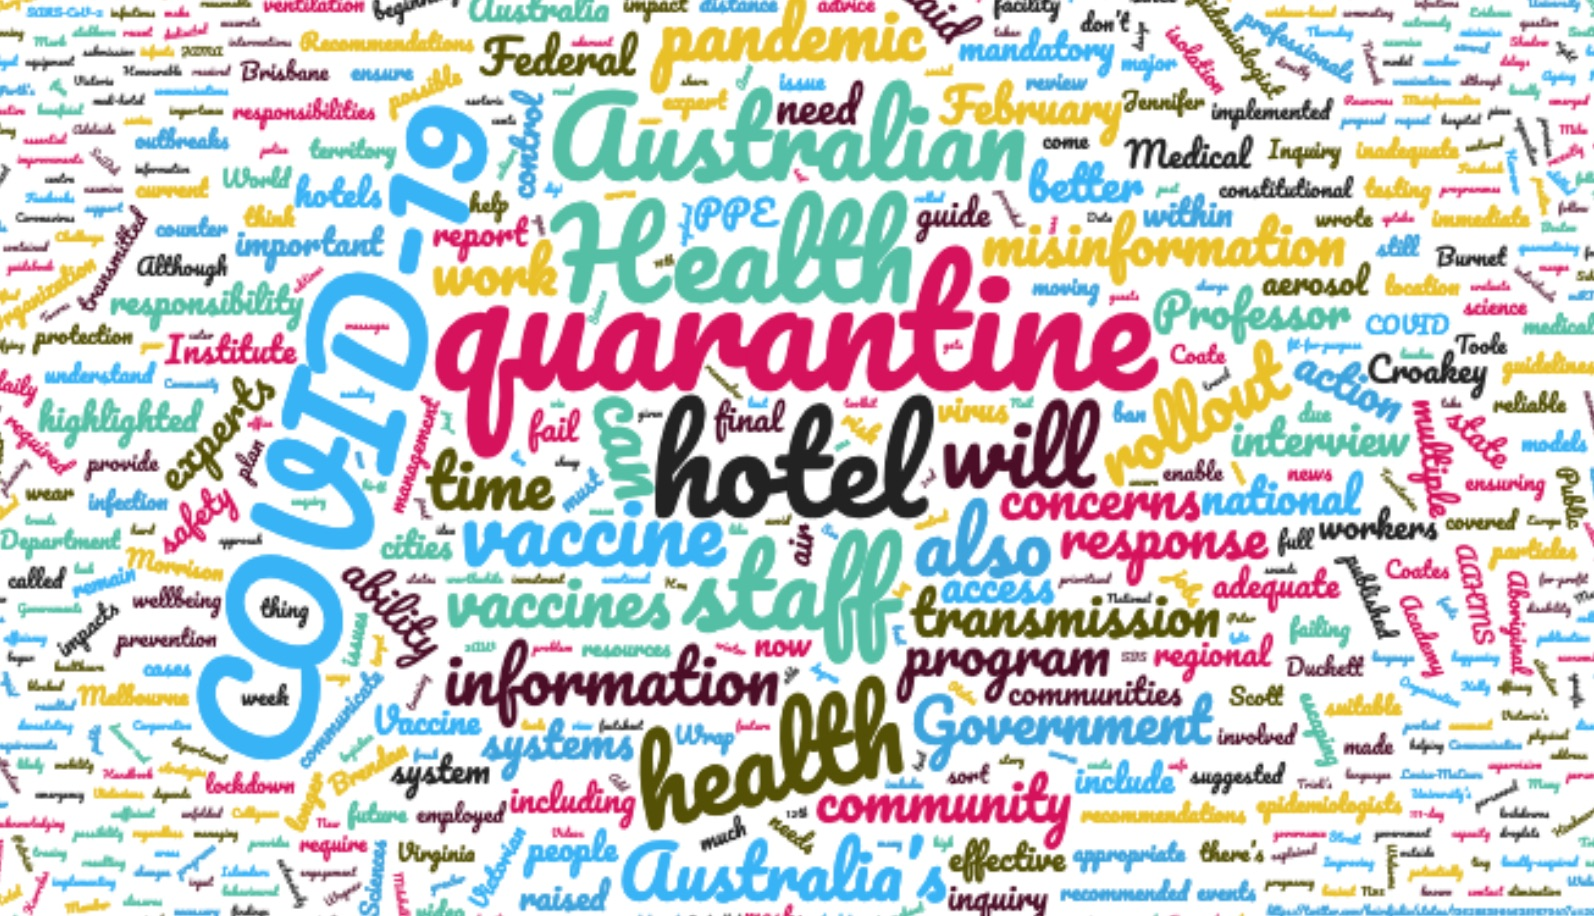 COVID-19 wrap: concerns on quarantine, misinformation overload and useful resources